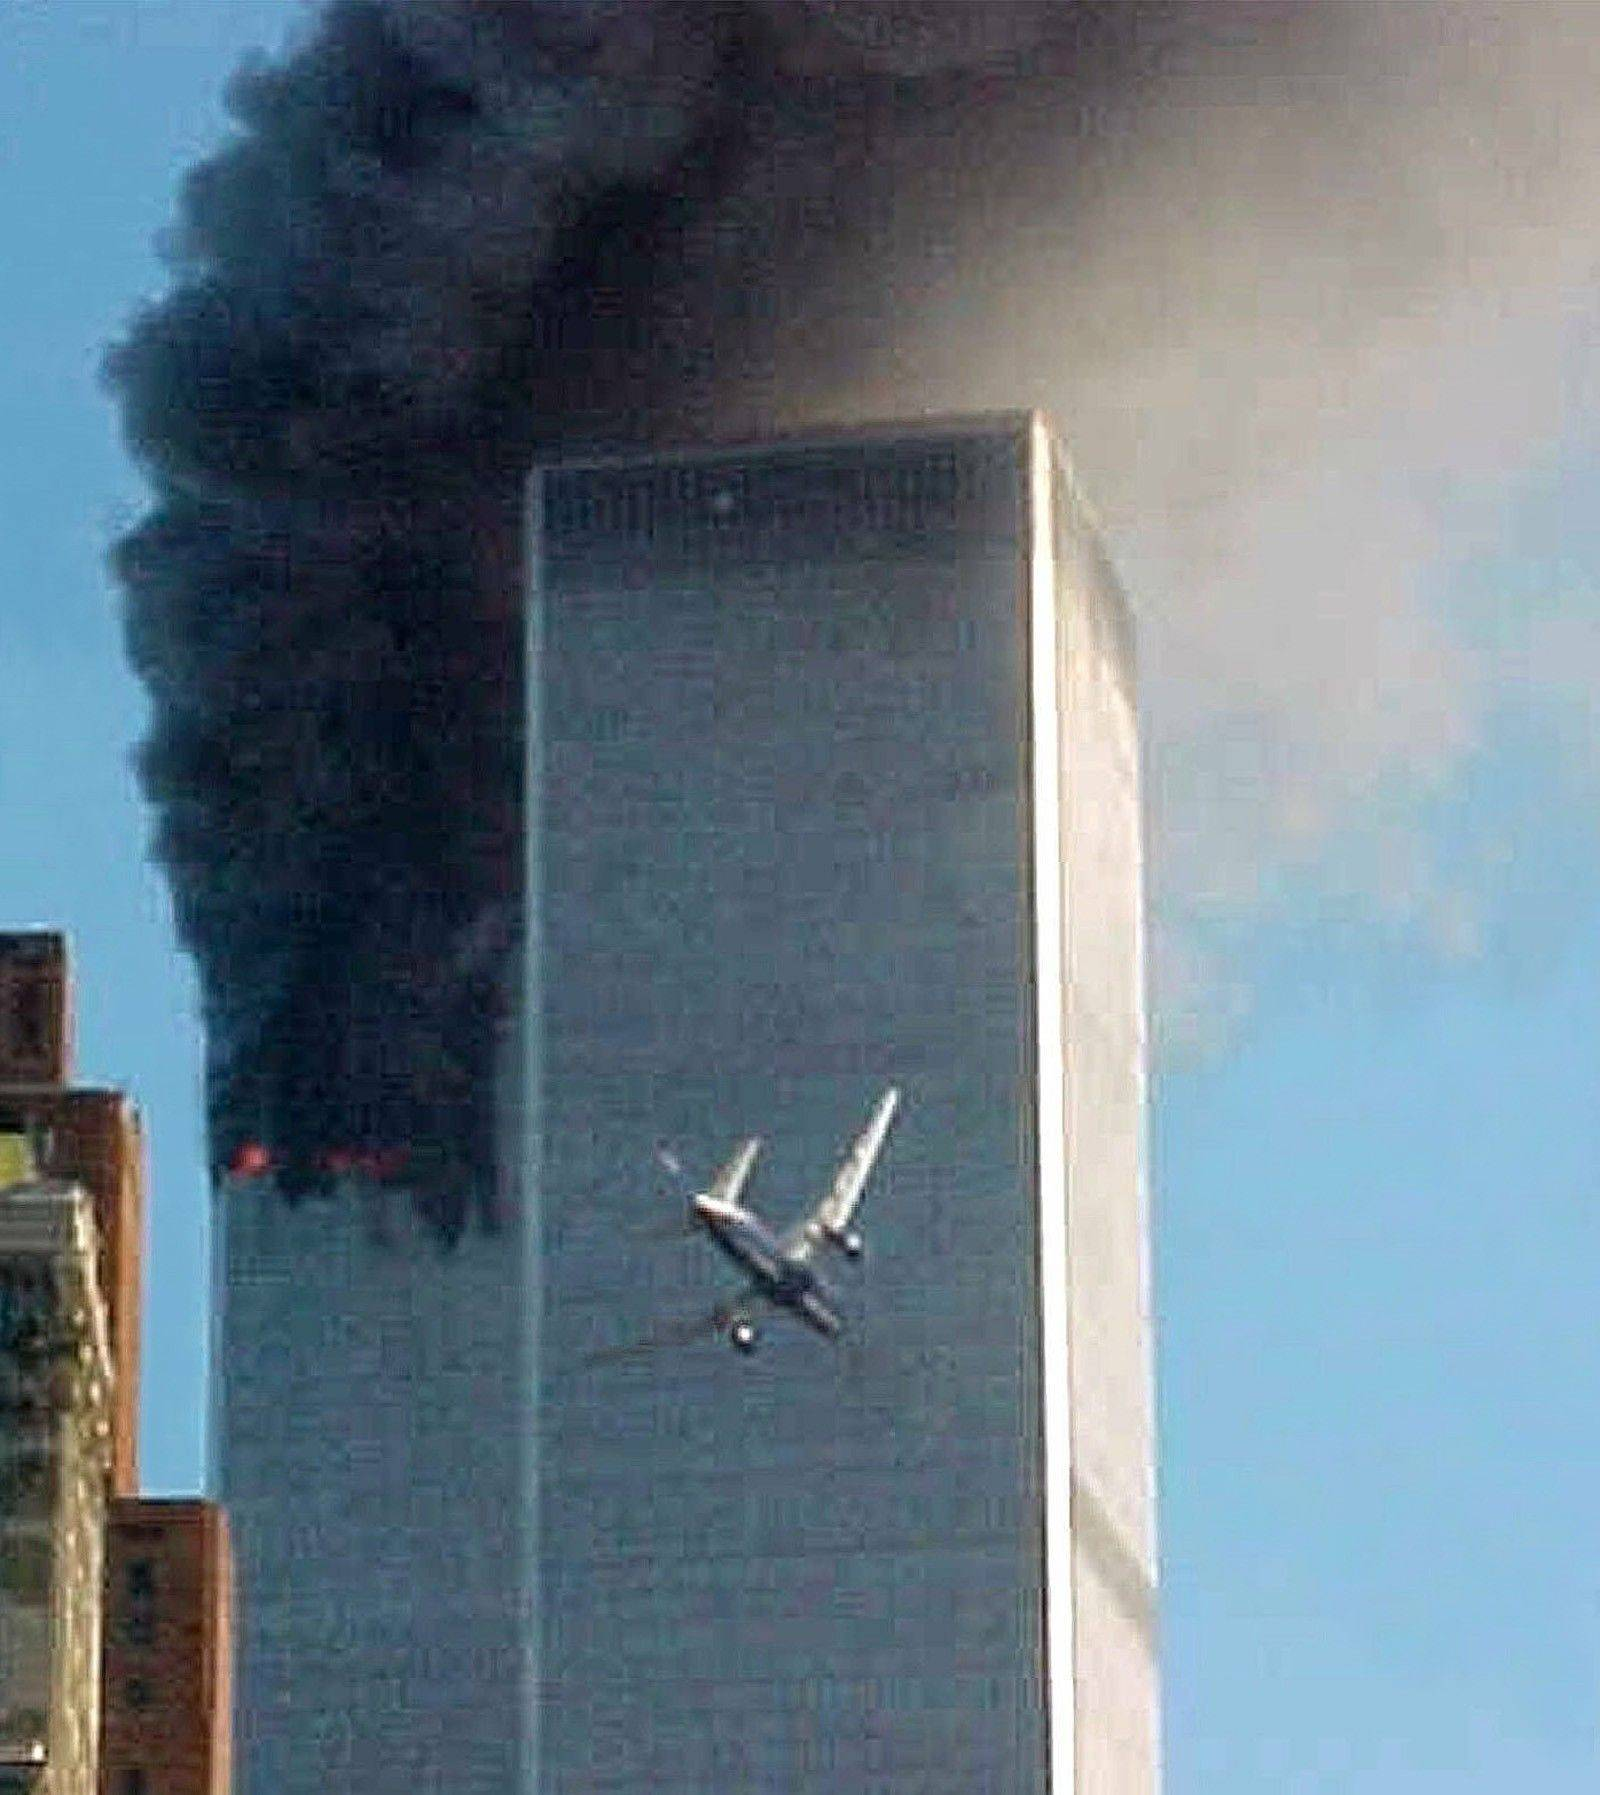 As an already horrified nation watched the smoke billowing from the north tower of the World Trade Center in New York on Sept. 11, 2001, hijacked United Airlines Flight 175 is about to rip into the south tower.